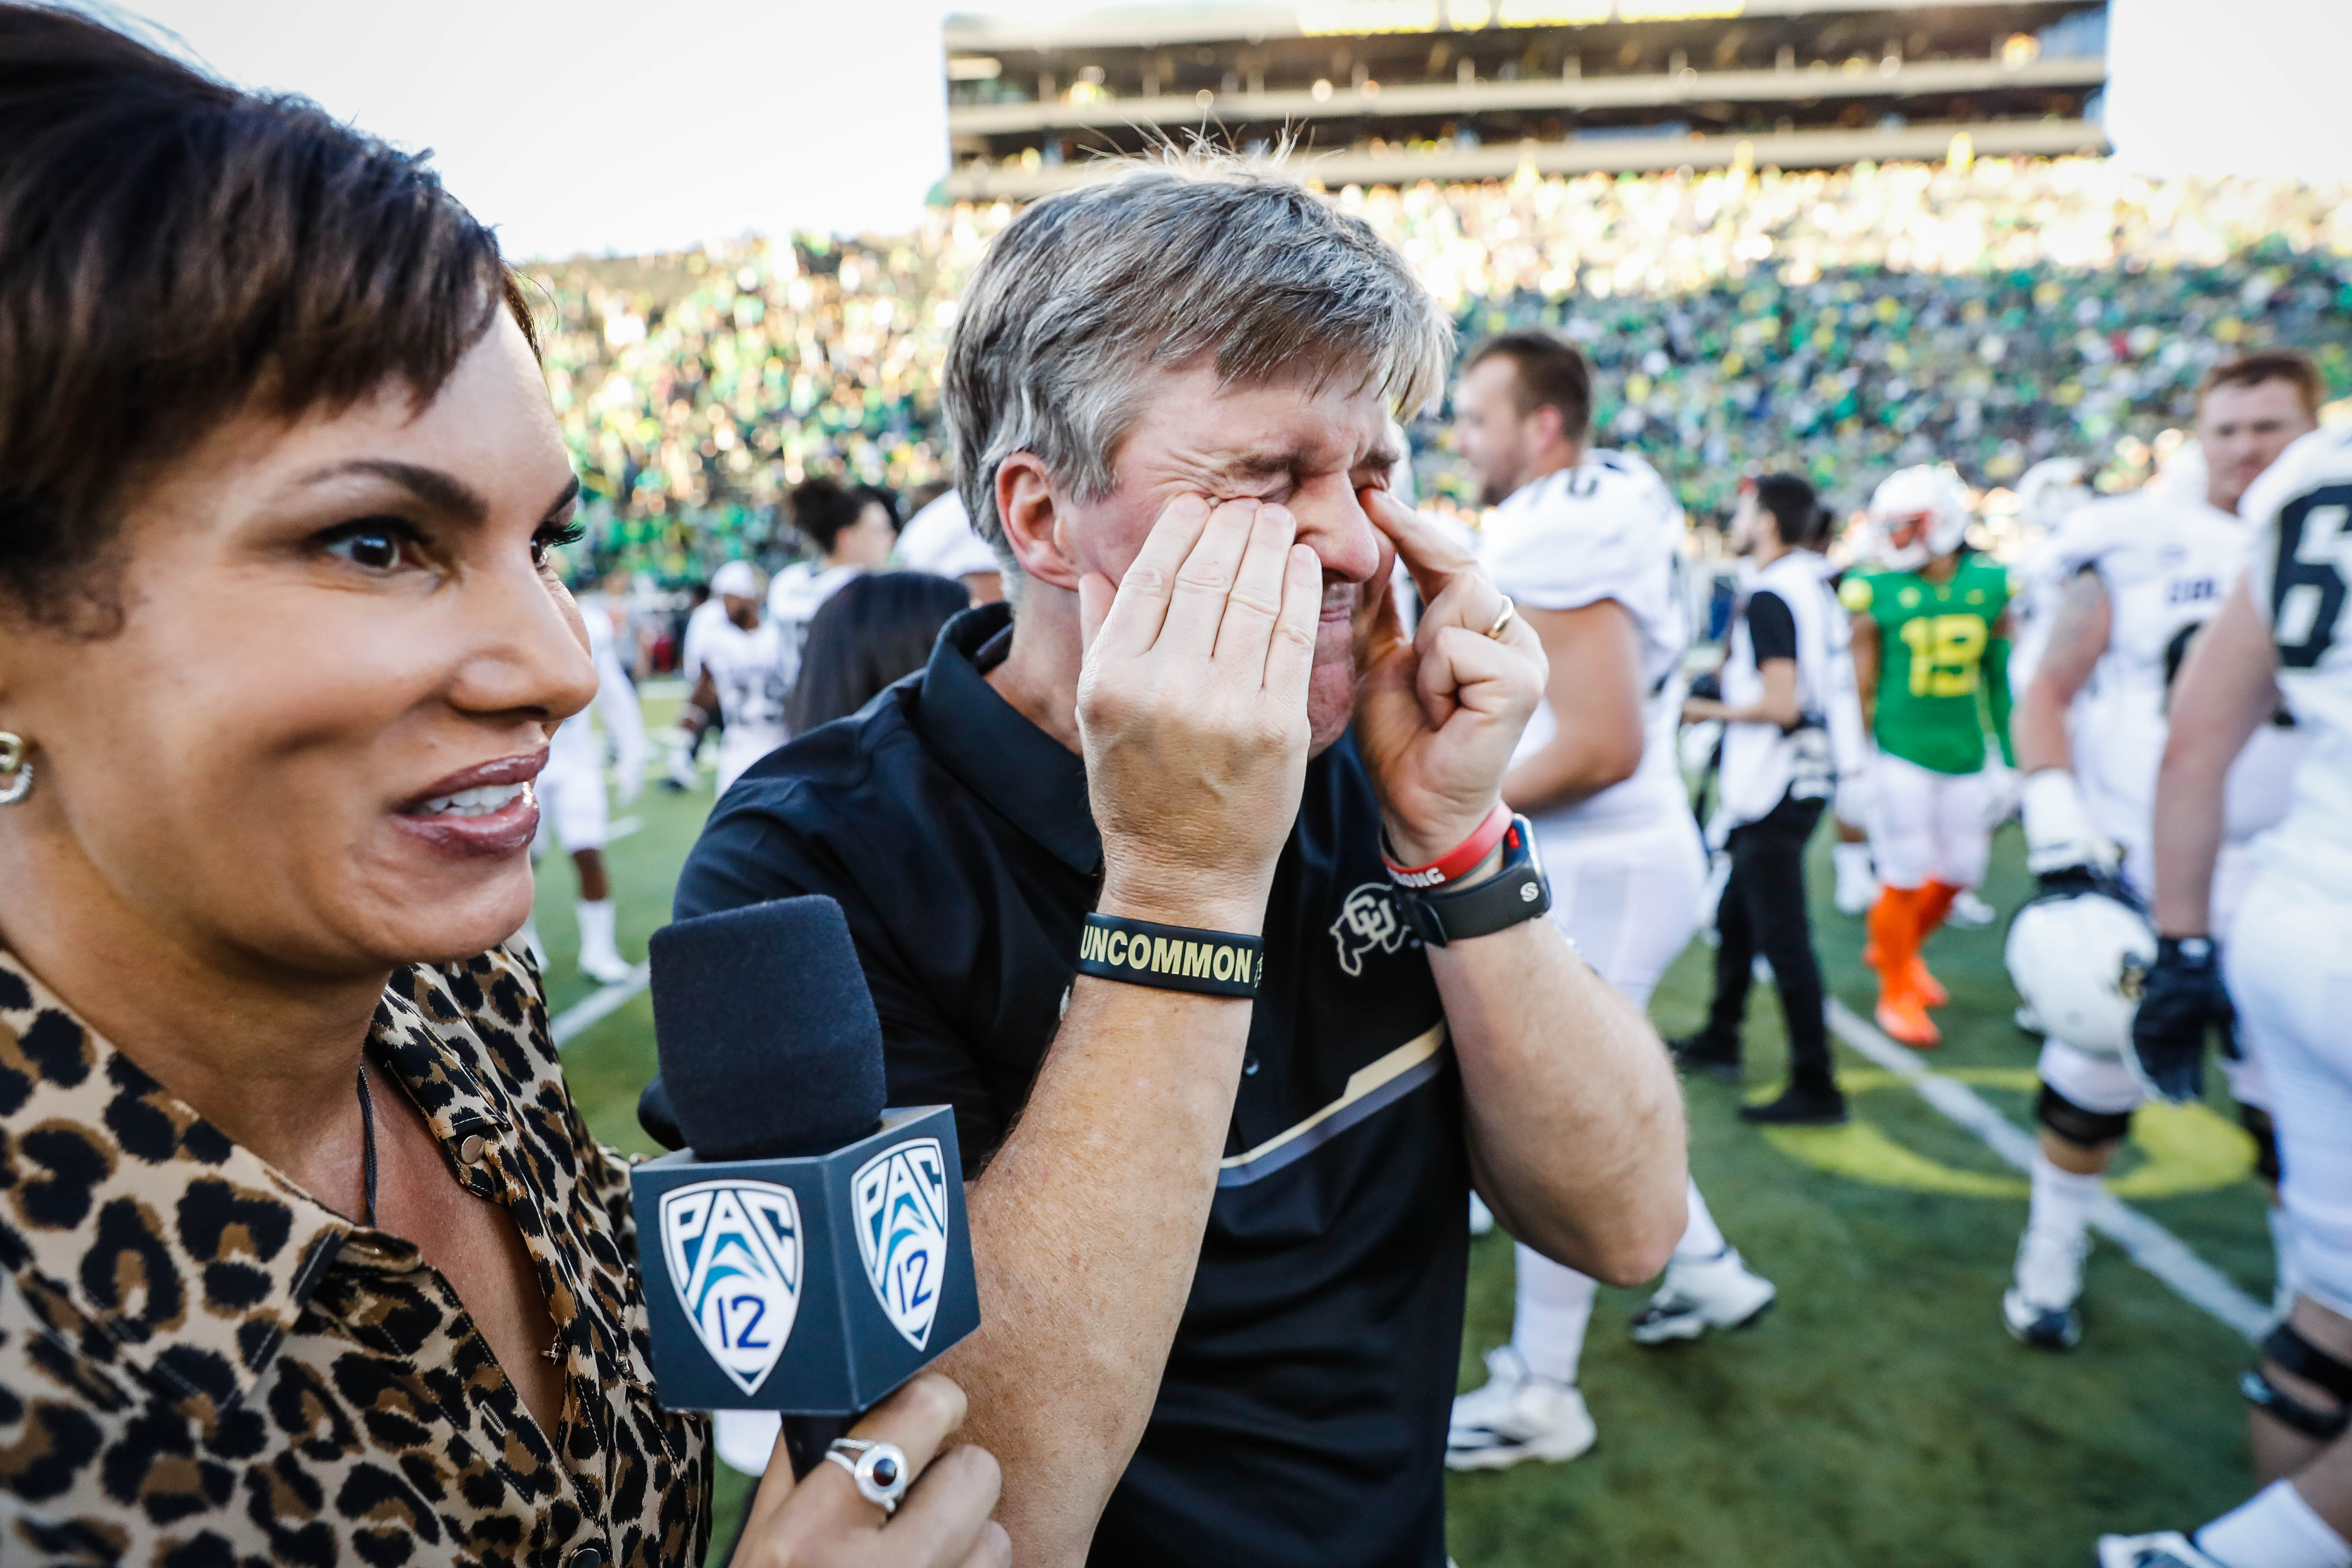 Colorado head coach Mike MacIntyre wipes tears from his eyes before his television interview after their win over Oregon in an NCAA college football game Saturday, Sept. 24, 2016 in Eugene, Ore. (AP Photo/Thomas Boyd)